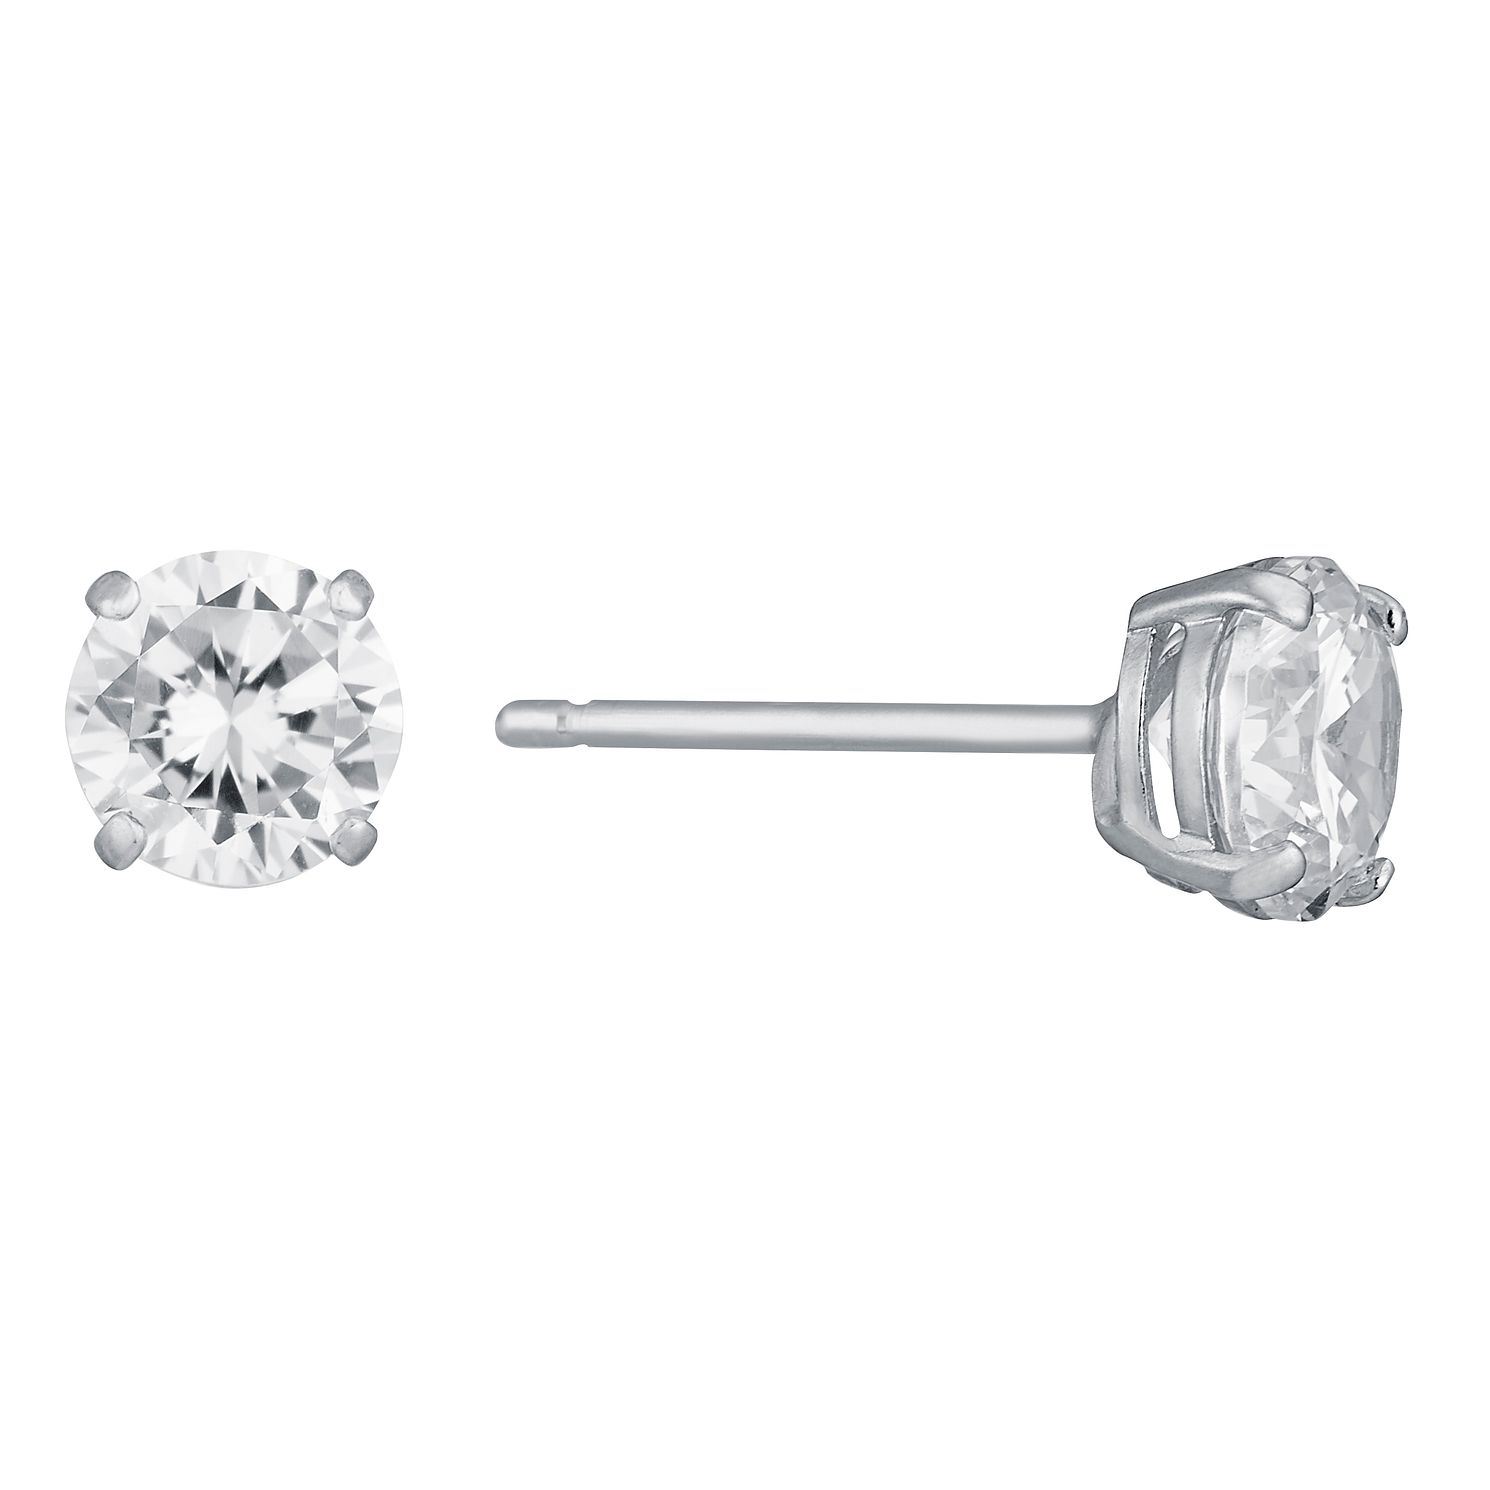 9ct White Gold 5mm Cubic Zirconia Stud Earrings - Product number 6516432